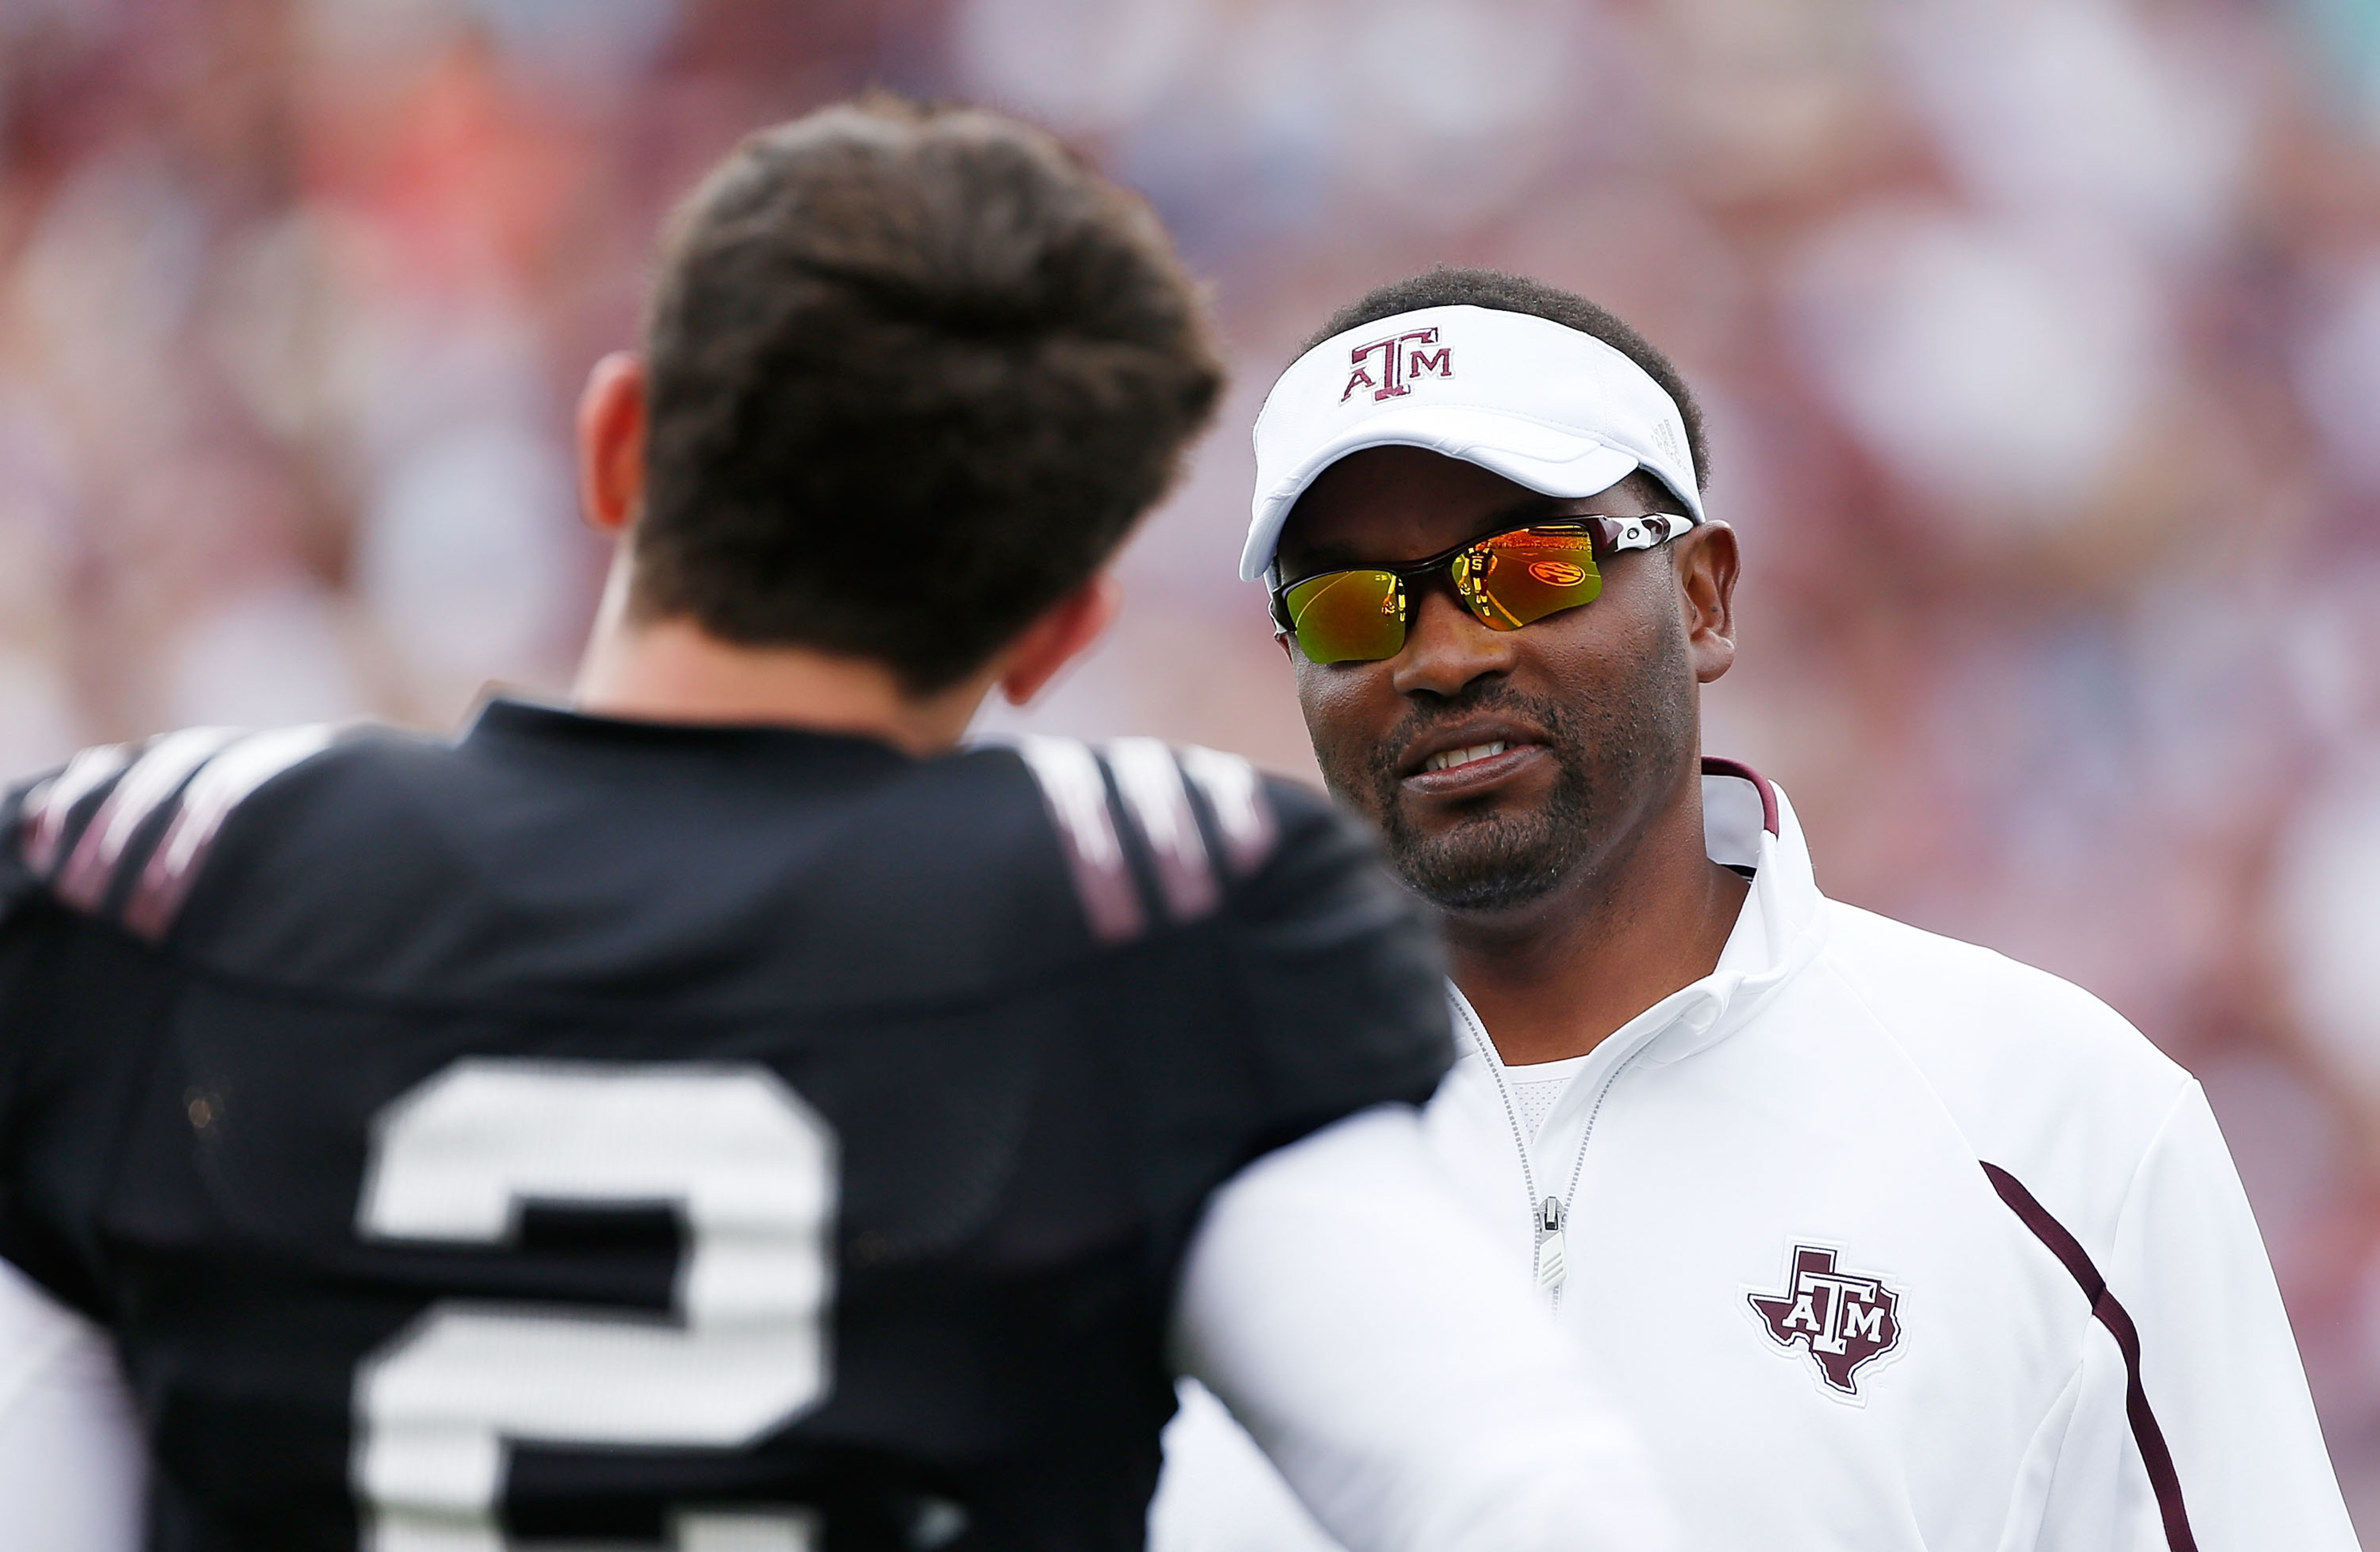 Johnny Manziel to Kevin Sumlin on insane throw: 'Would've been a punt'